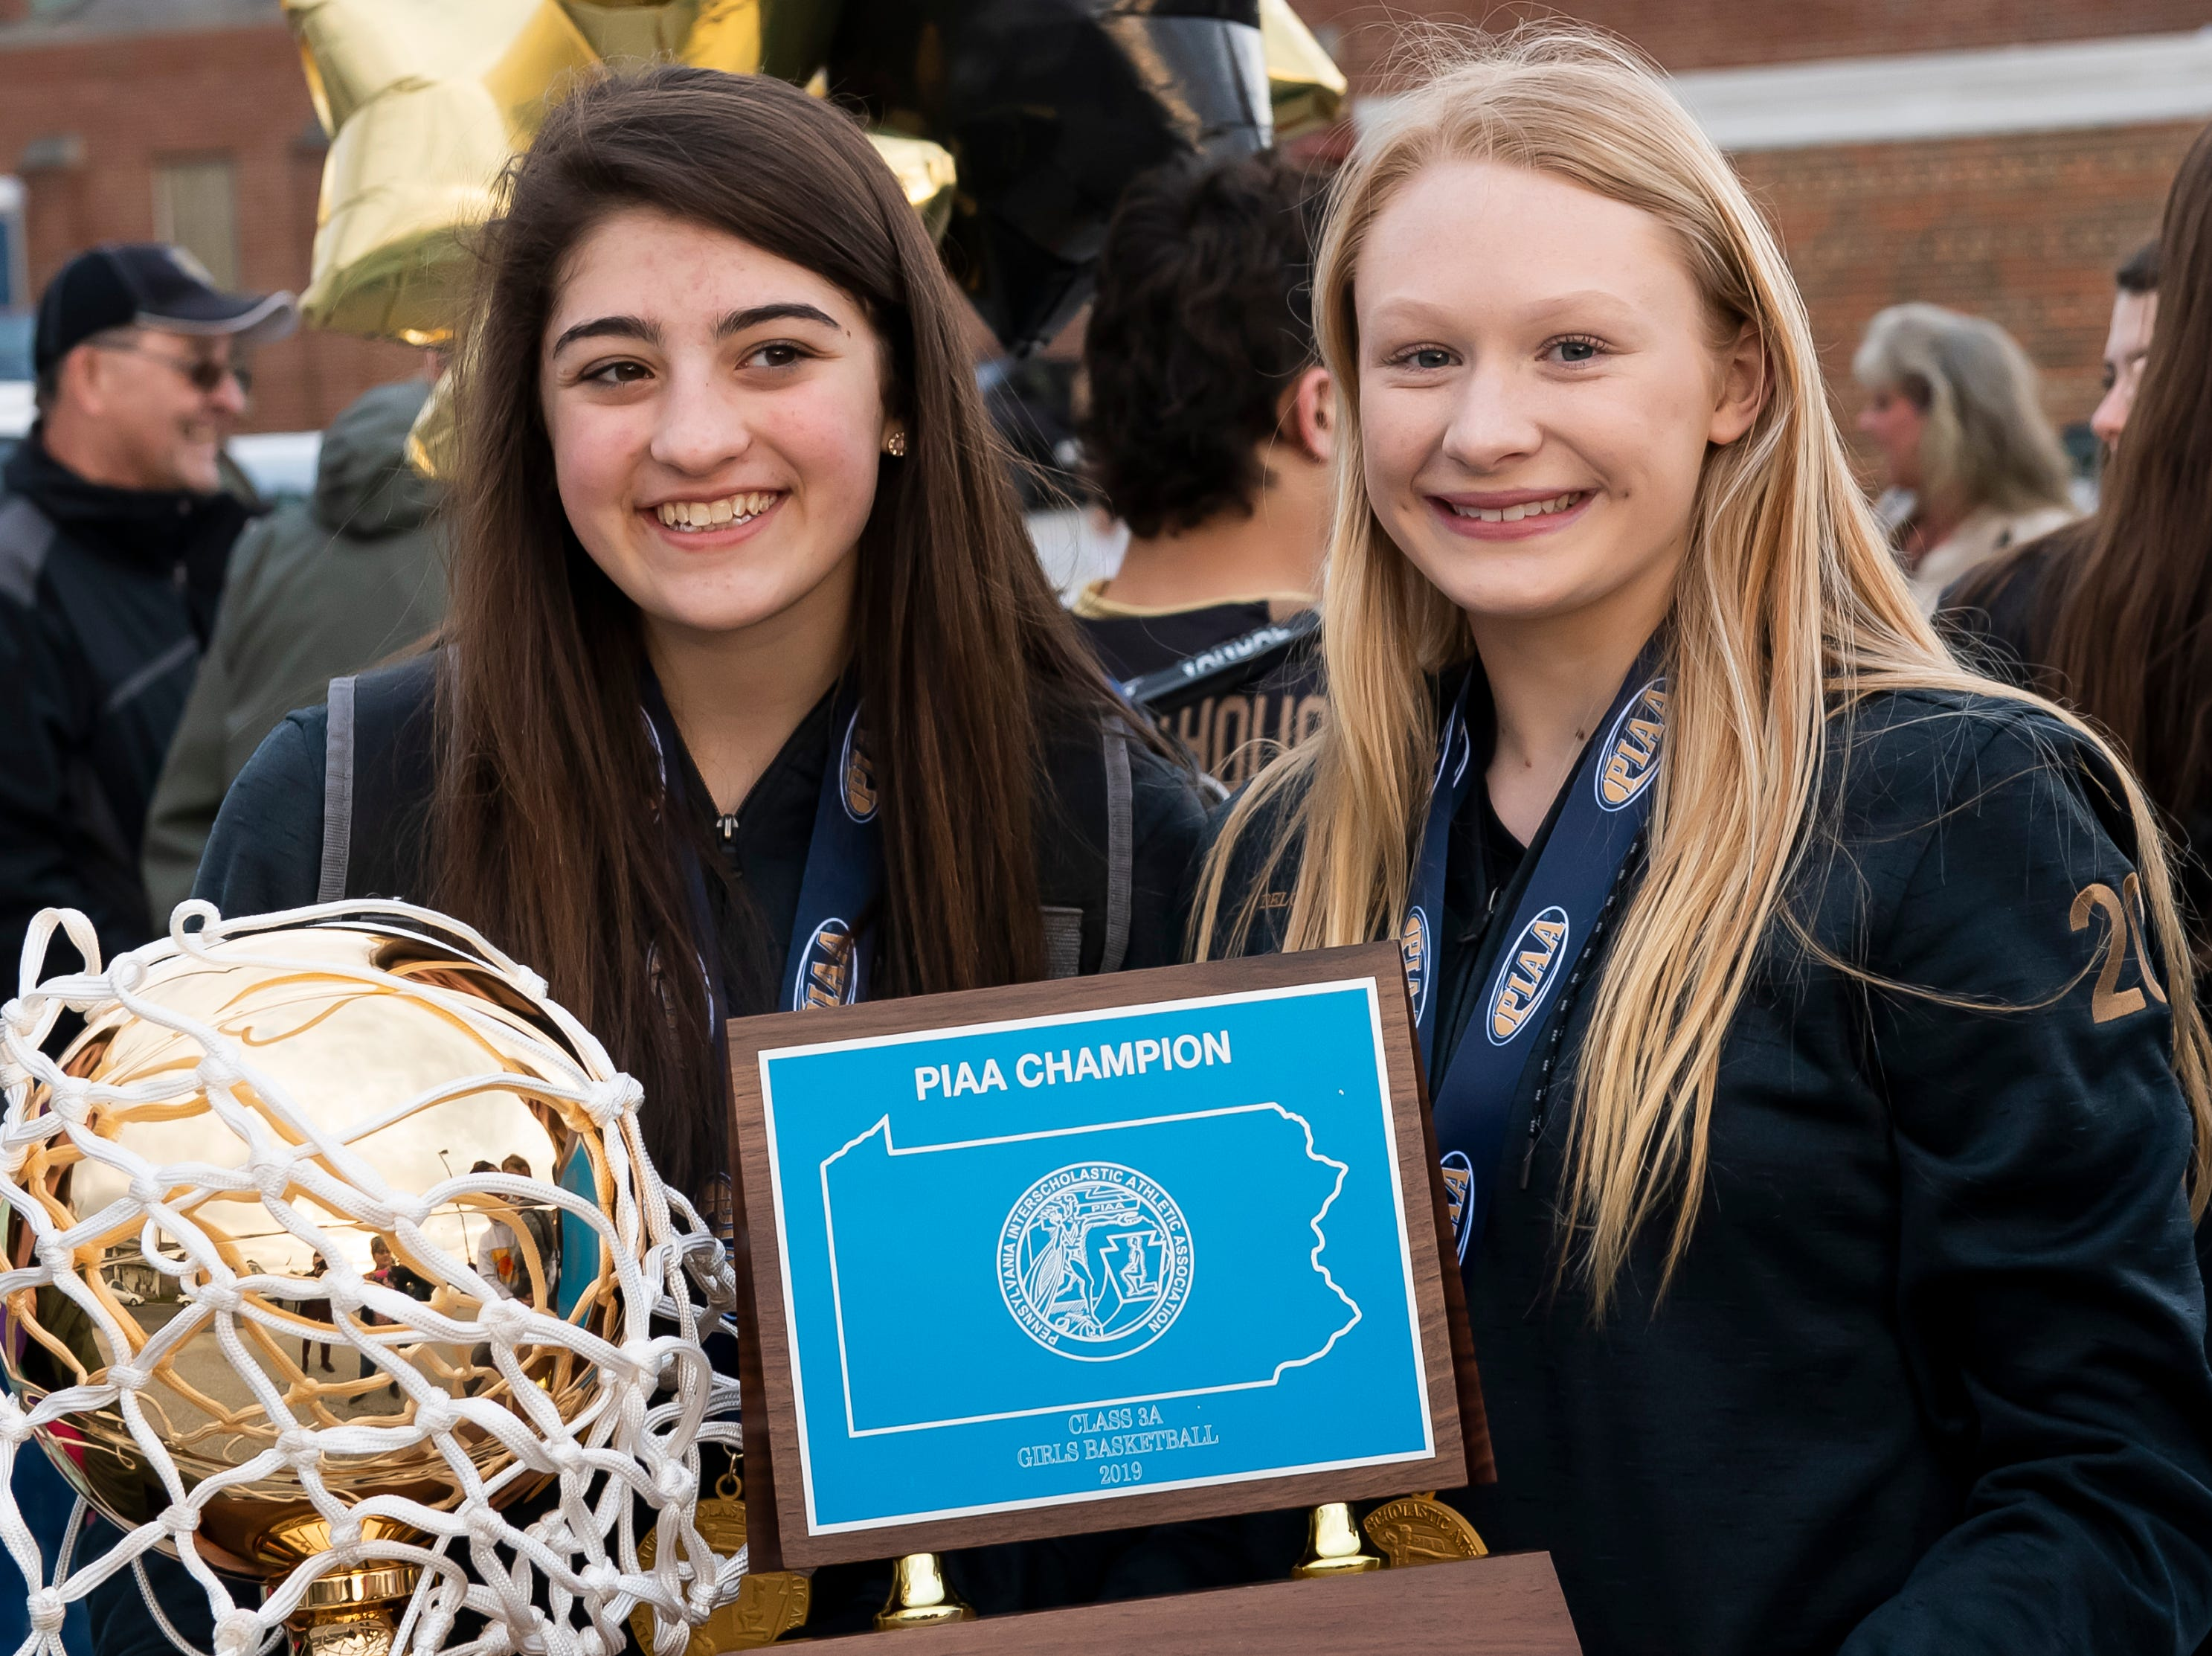 Delone Catholic's Maddie Sieg, left, and Brooke Lawyer pose for photos with the PIAA championship trophy following a parade in McSherrystown on Thursday, March 28, 2019.